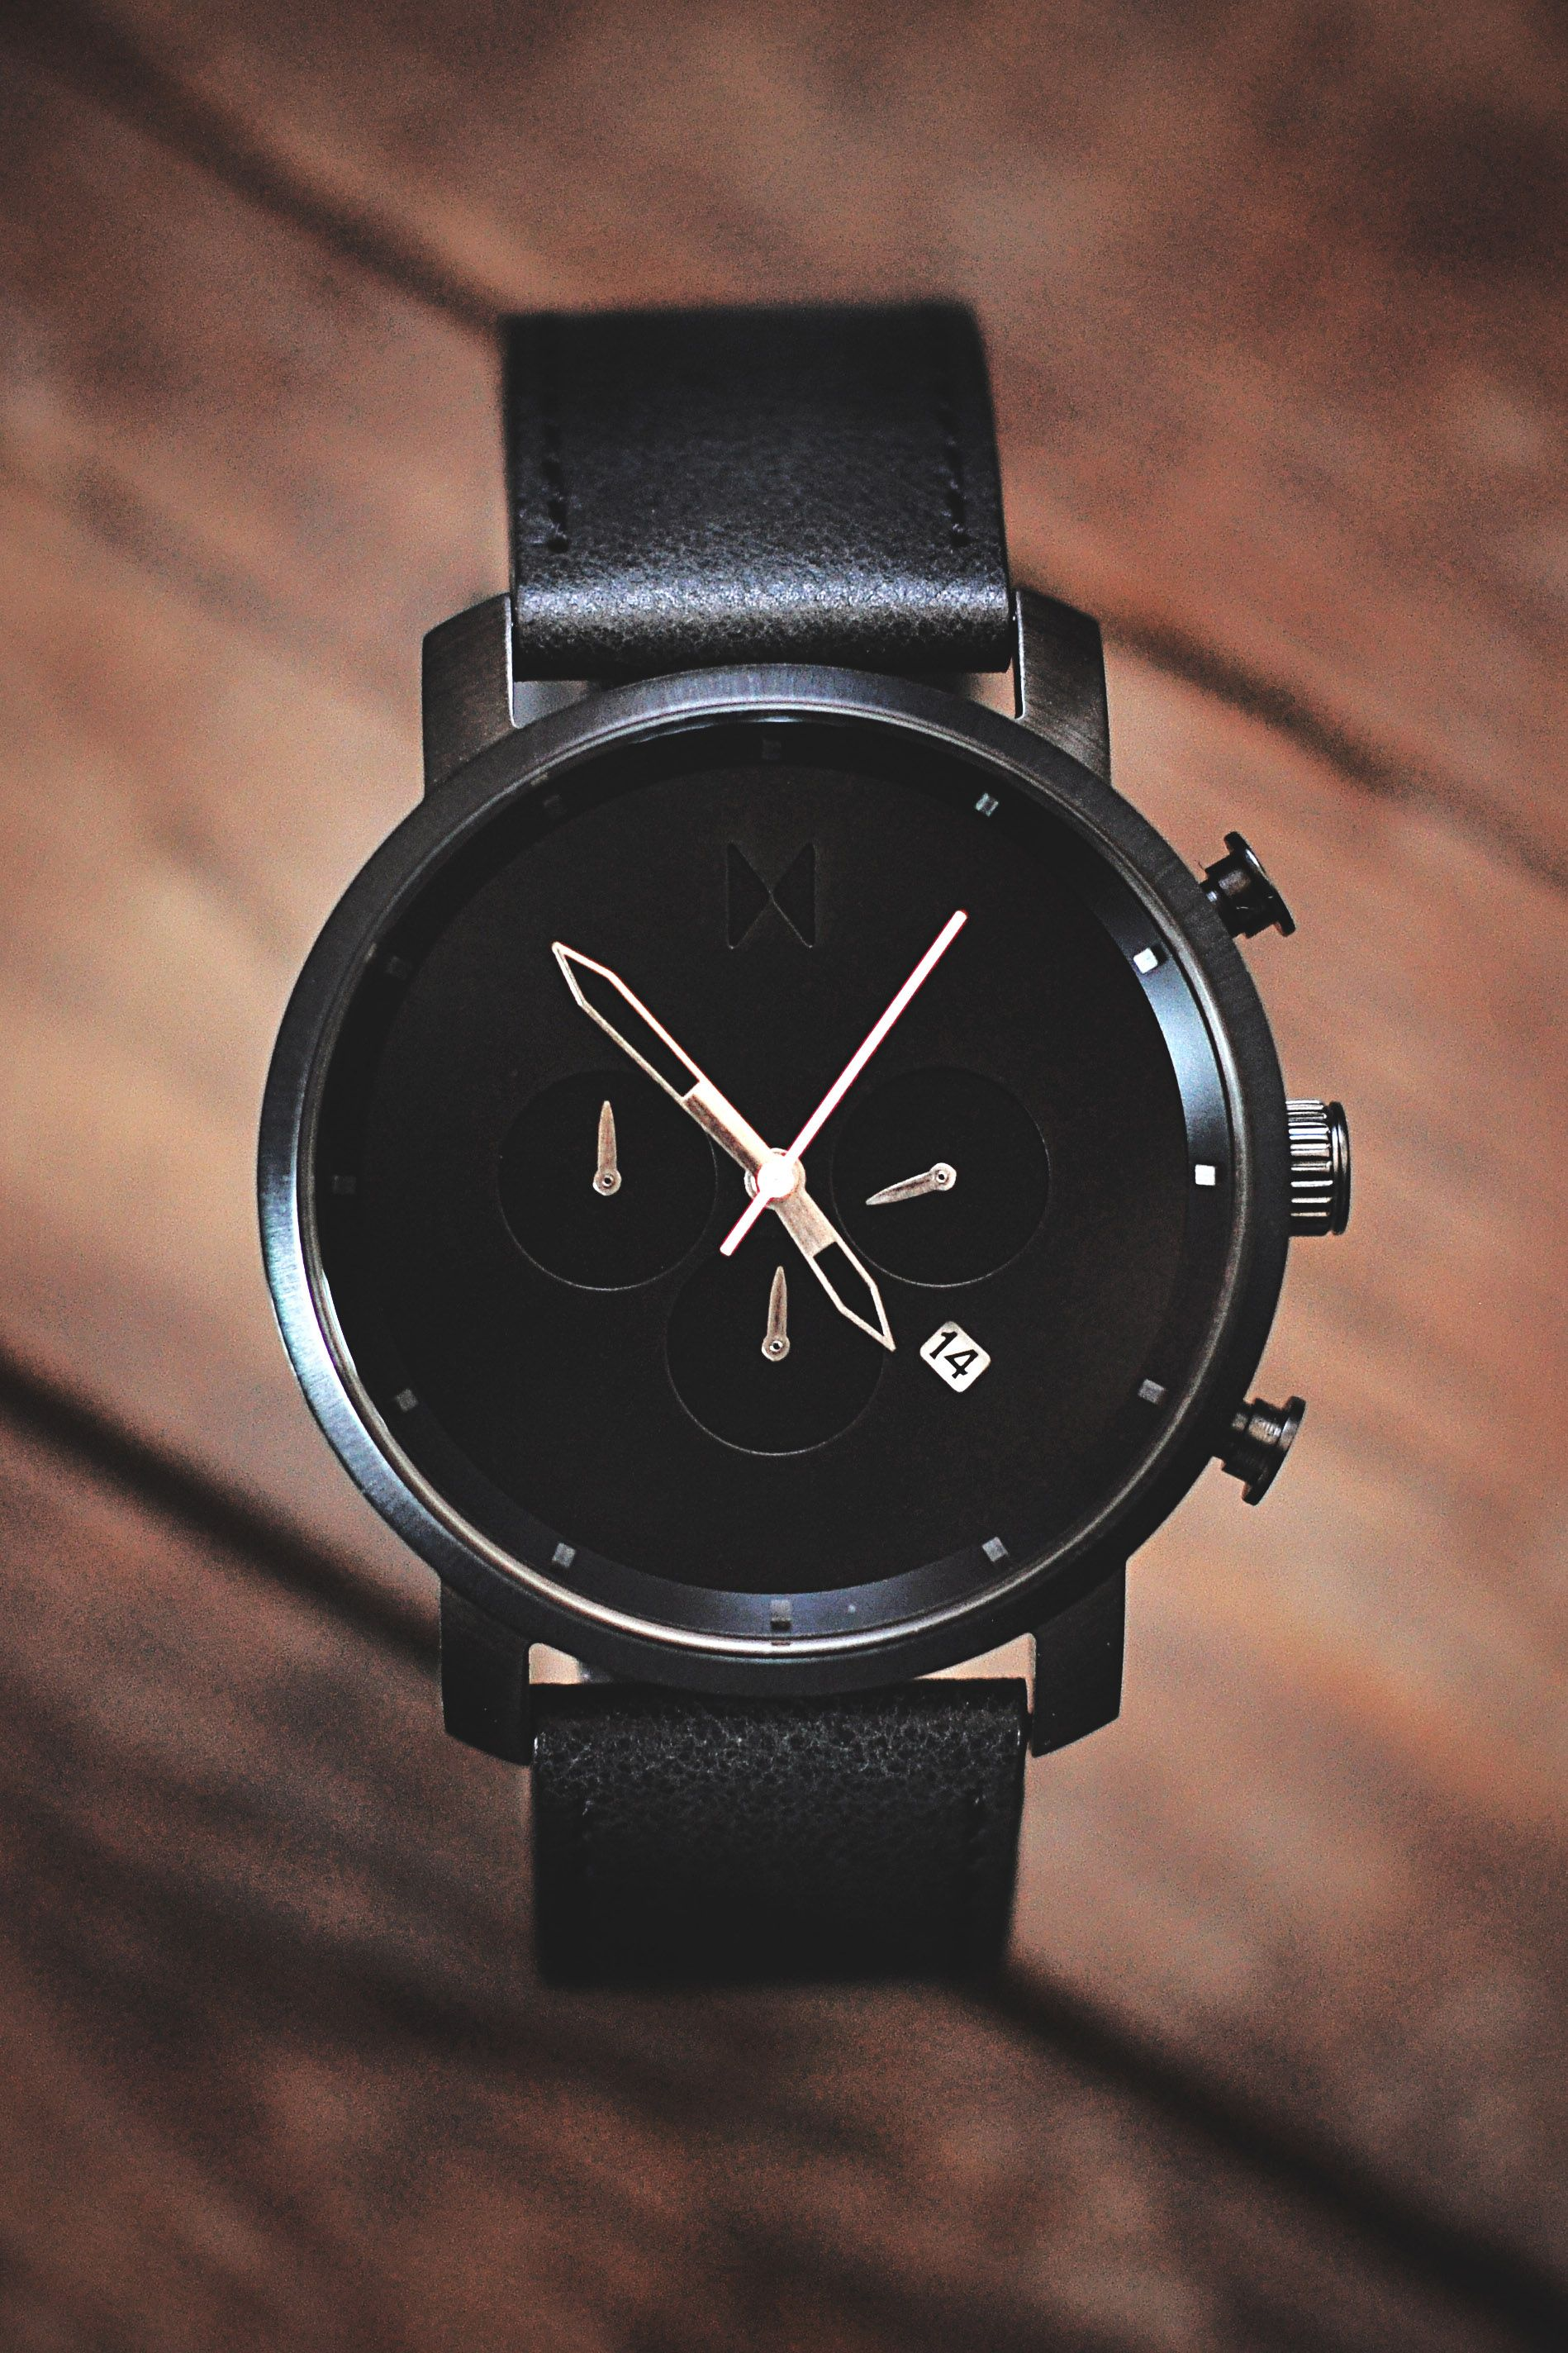 quality your you or watch wristwatch wood that can photos use dl and cs stock time as watches business wallpaper website of images search srgb desktop for free photo pexels high